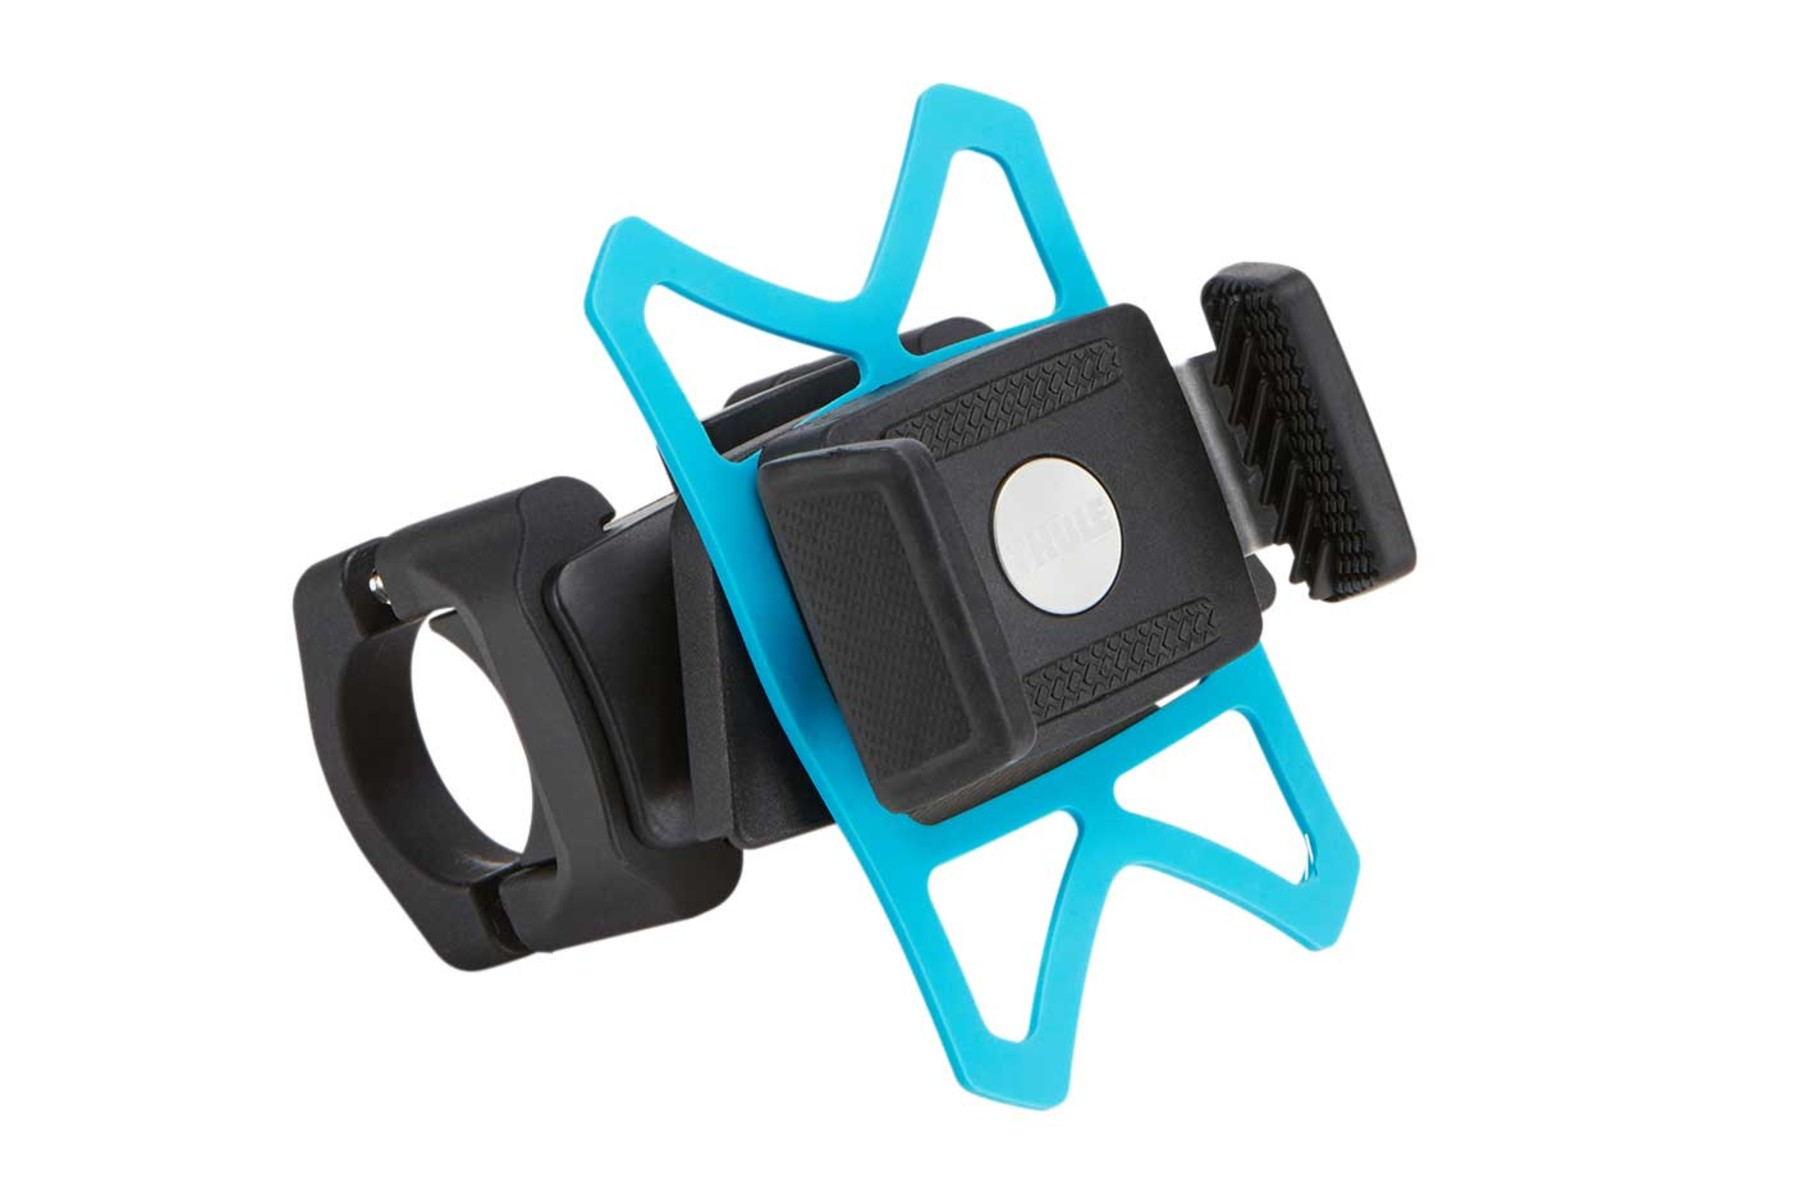 Bike Phone Motorcycle Phone Mount for Any Smart Phone /& Mountain Bike Mount for Bike Accessories